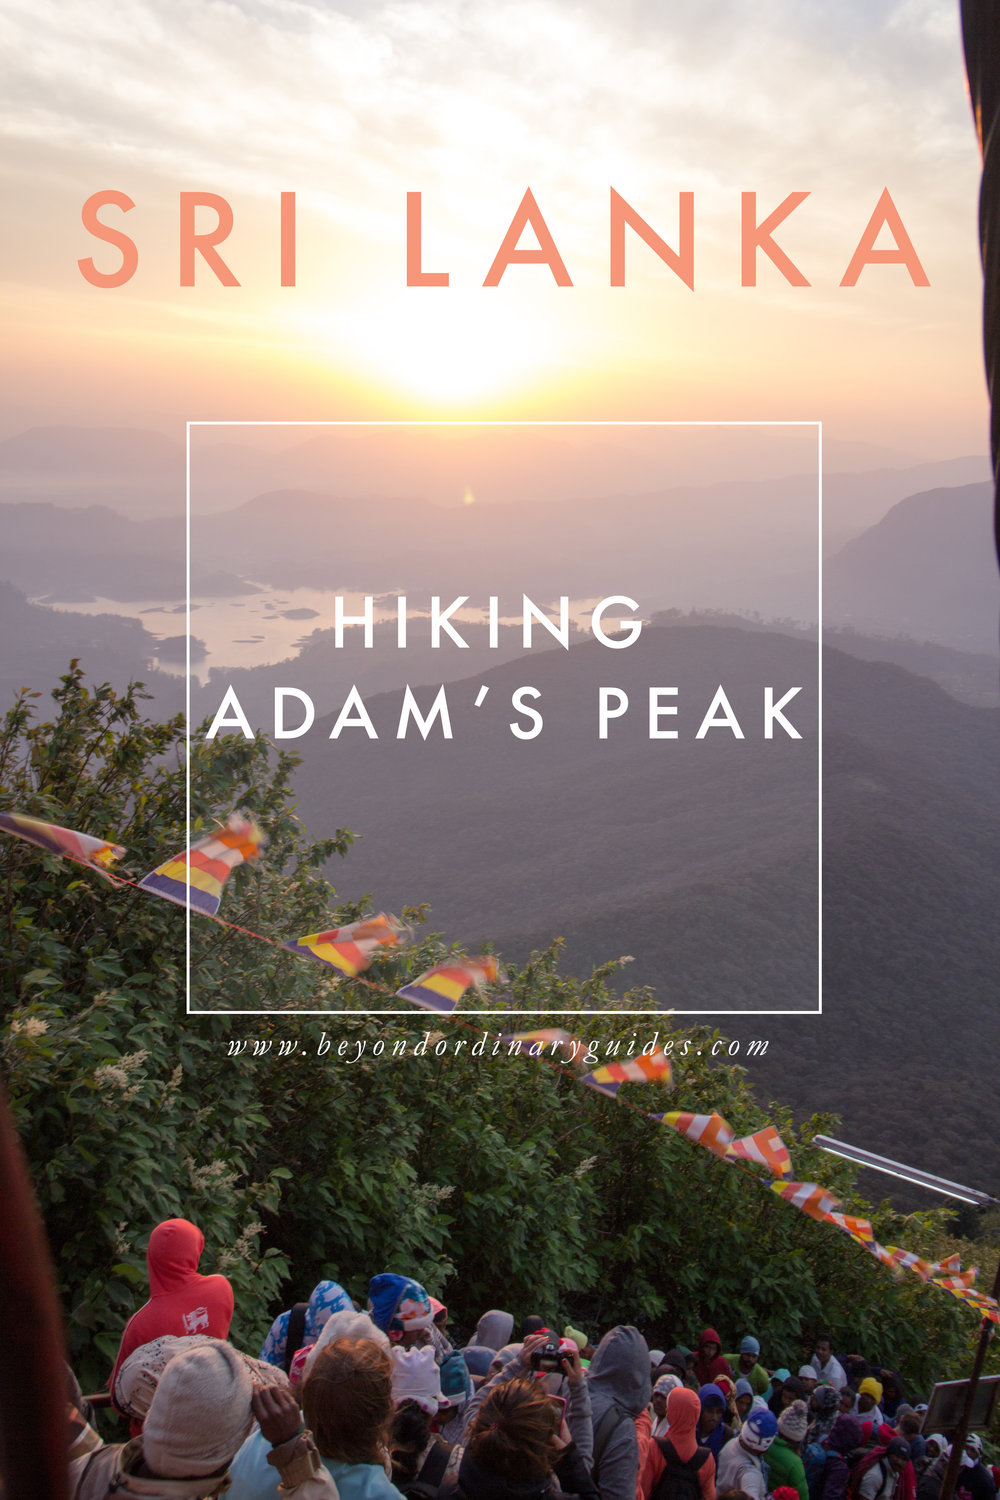 Hiking Adam's Peak | Sri Lanka